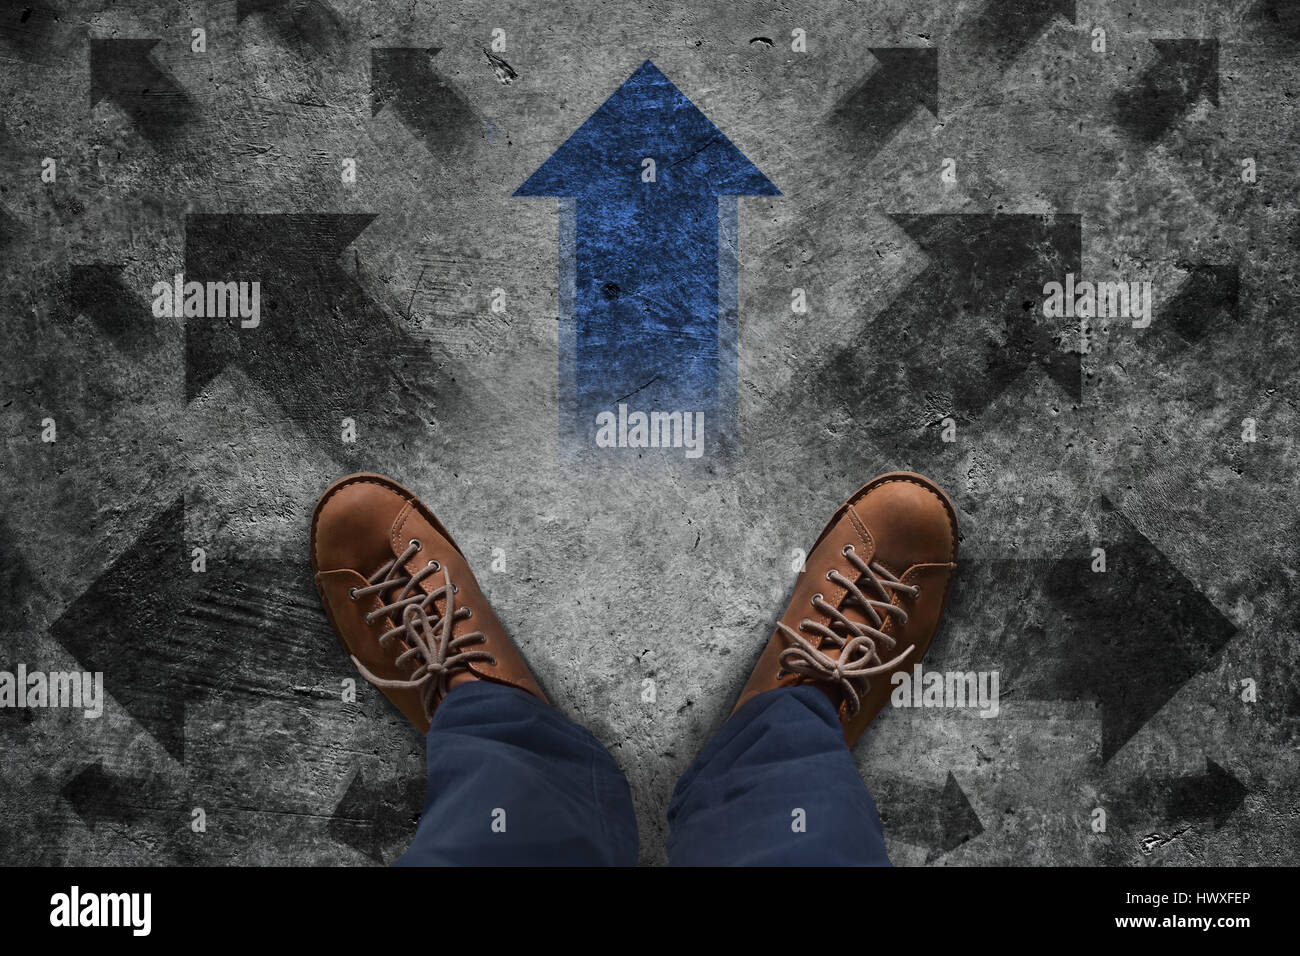 Making Decision Concept Top View Of Male In Leather Shoe Stand Over Stock Photo Alamy My friend was telling me to set the arrow direction using point how can i set both the position and direction of the popover's arrow? alamy